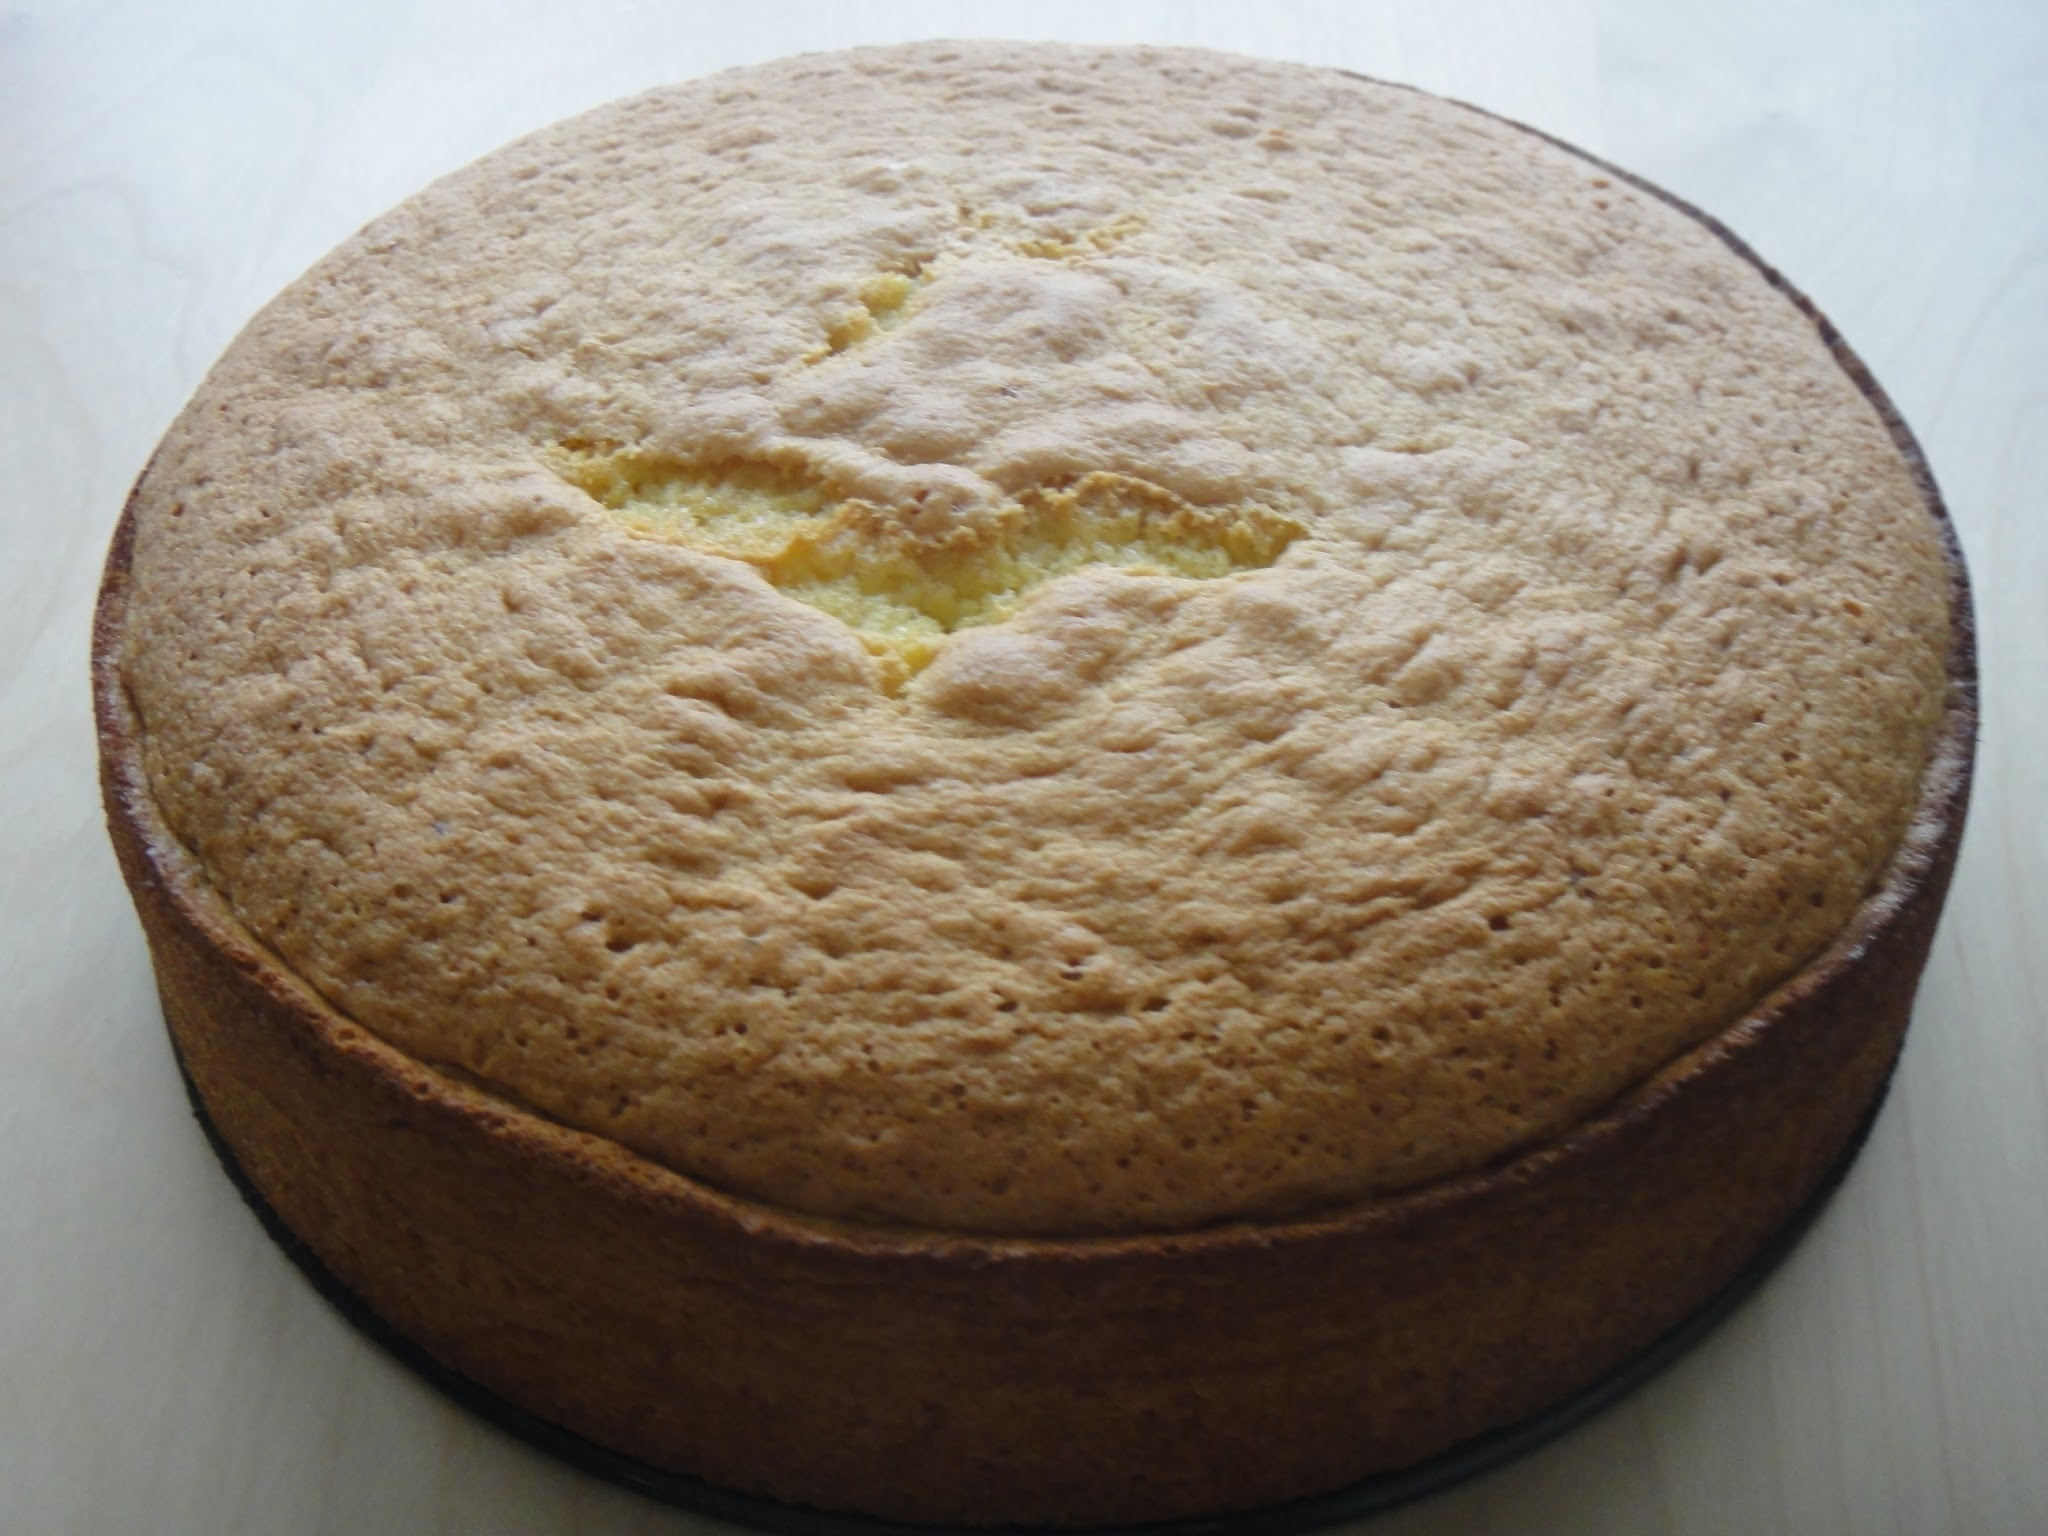 Prosty biszkopt na tort lub ciasto owocowe / A simple sponge cake for layer or fruit cake